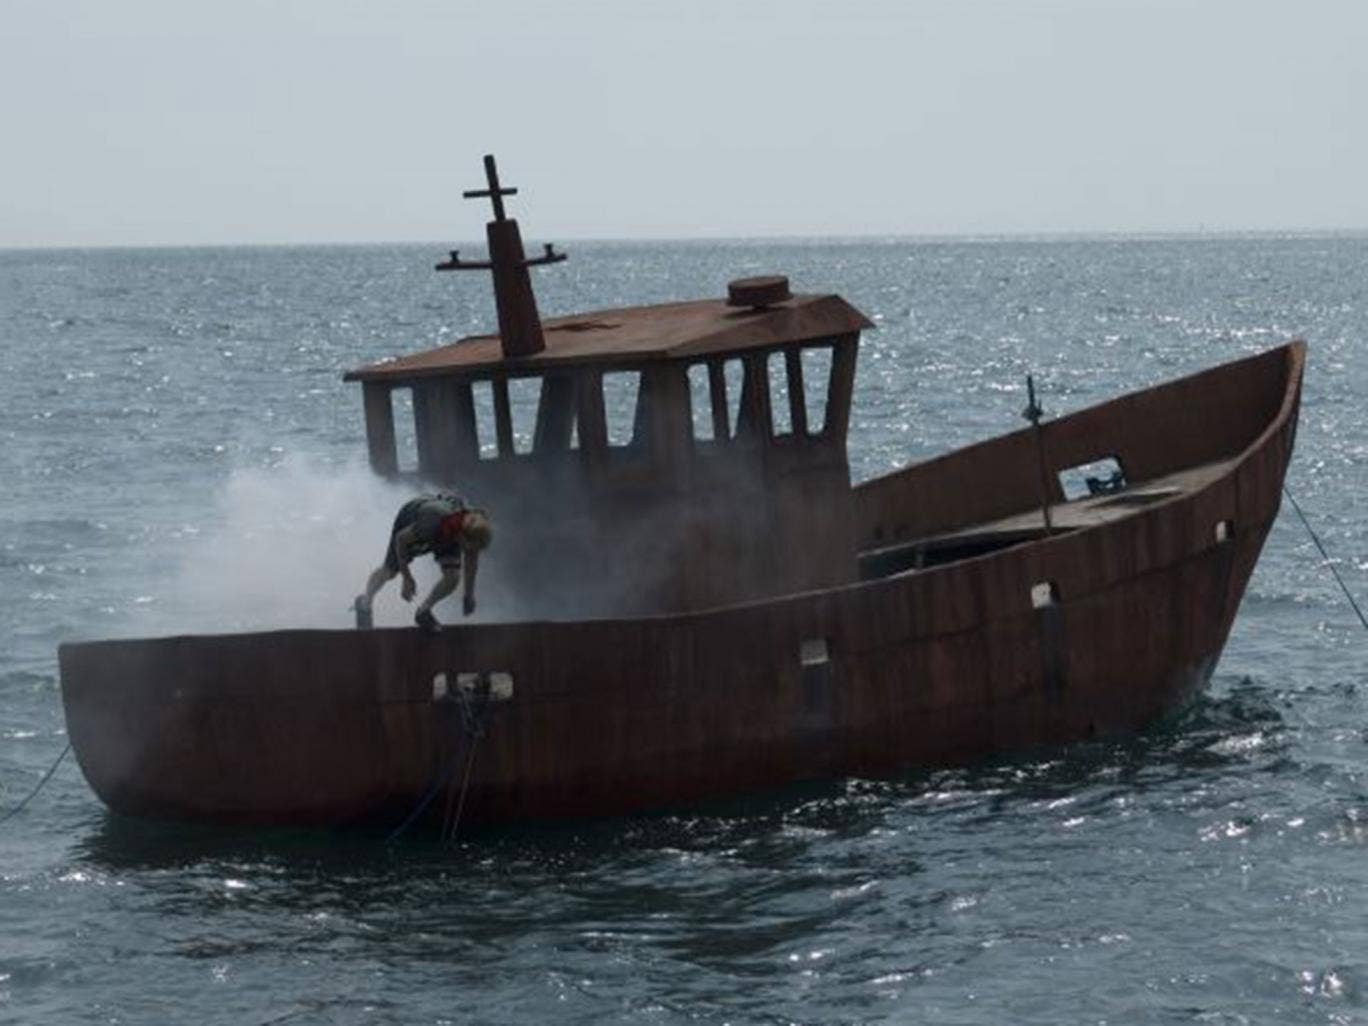 The small fishing vessel was towed out to sea and set alight. It will sink to the seabed to begin its eventual new life as artificial reef